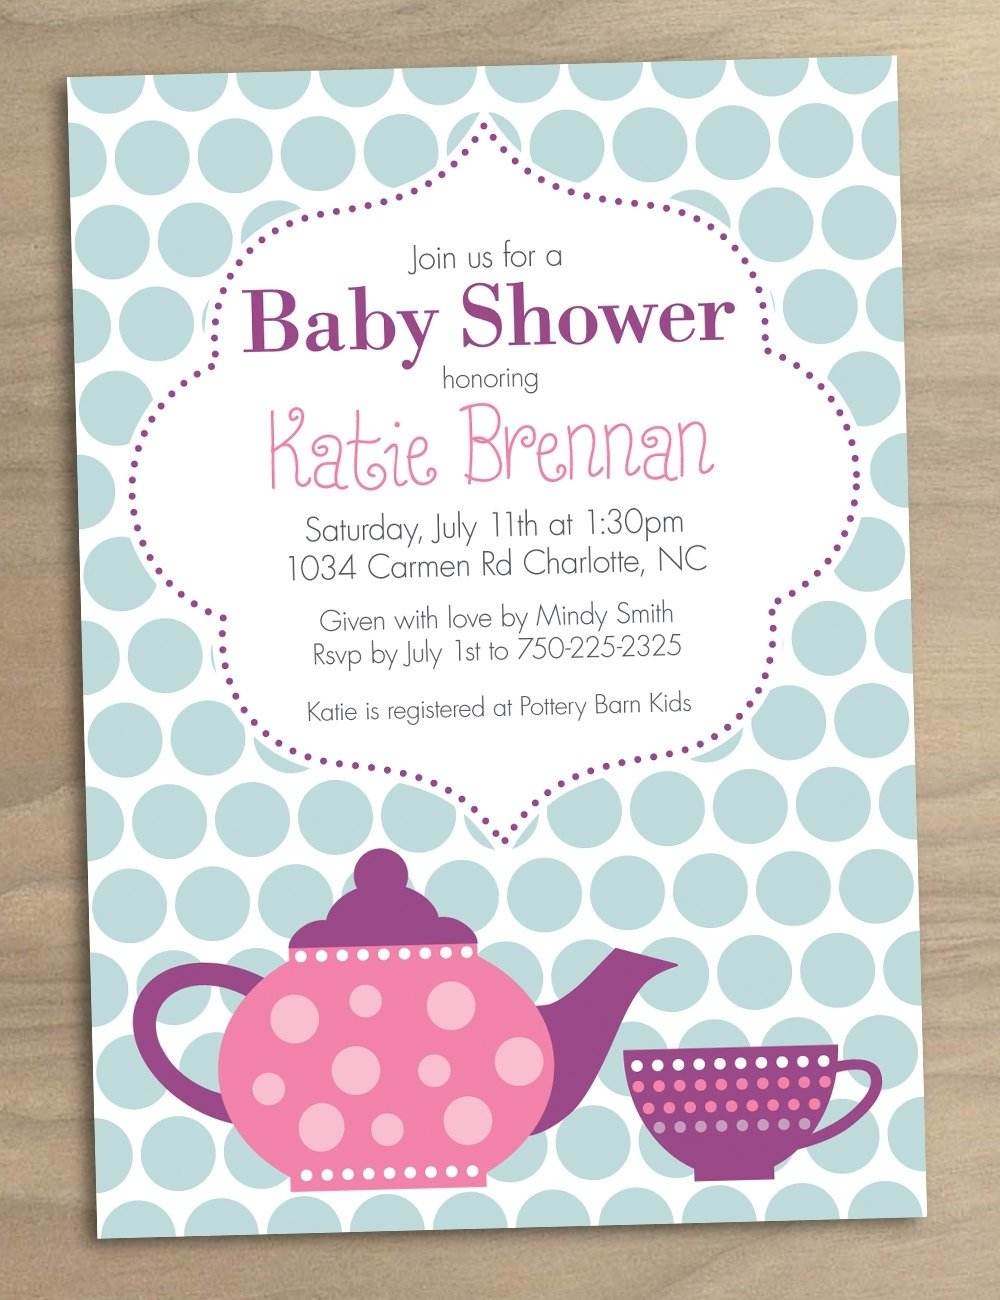 10 Attractive Invitation Ideas For Baby Shower high tea baby shower invites templates sempak e39380a5e502 2020